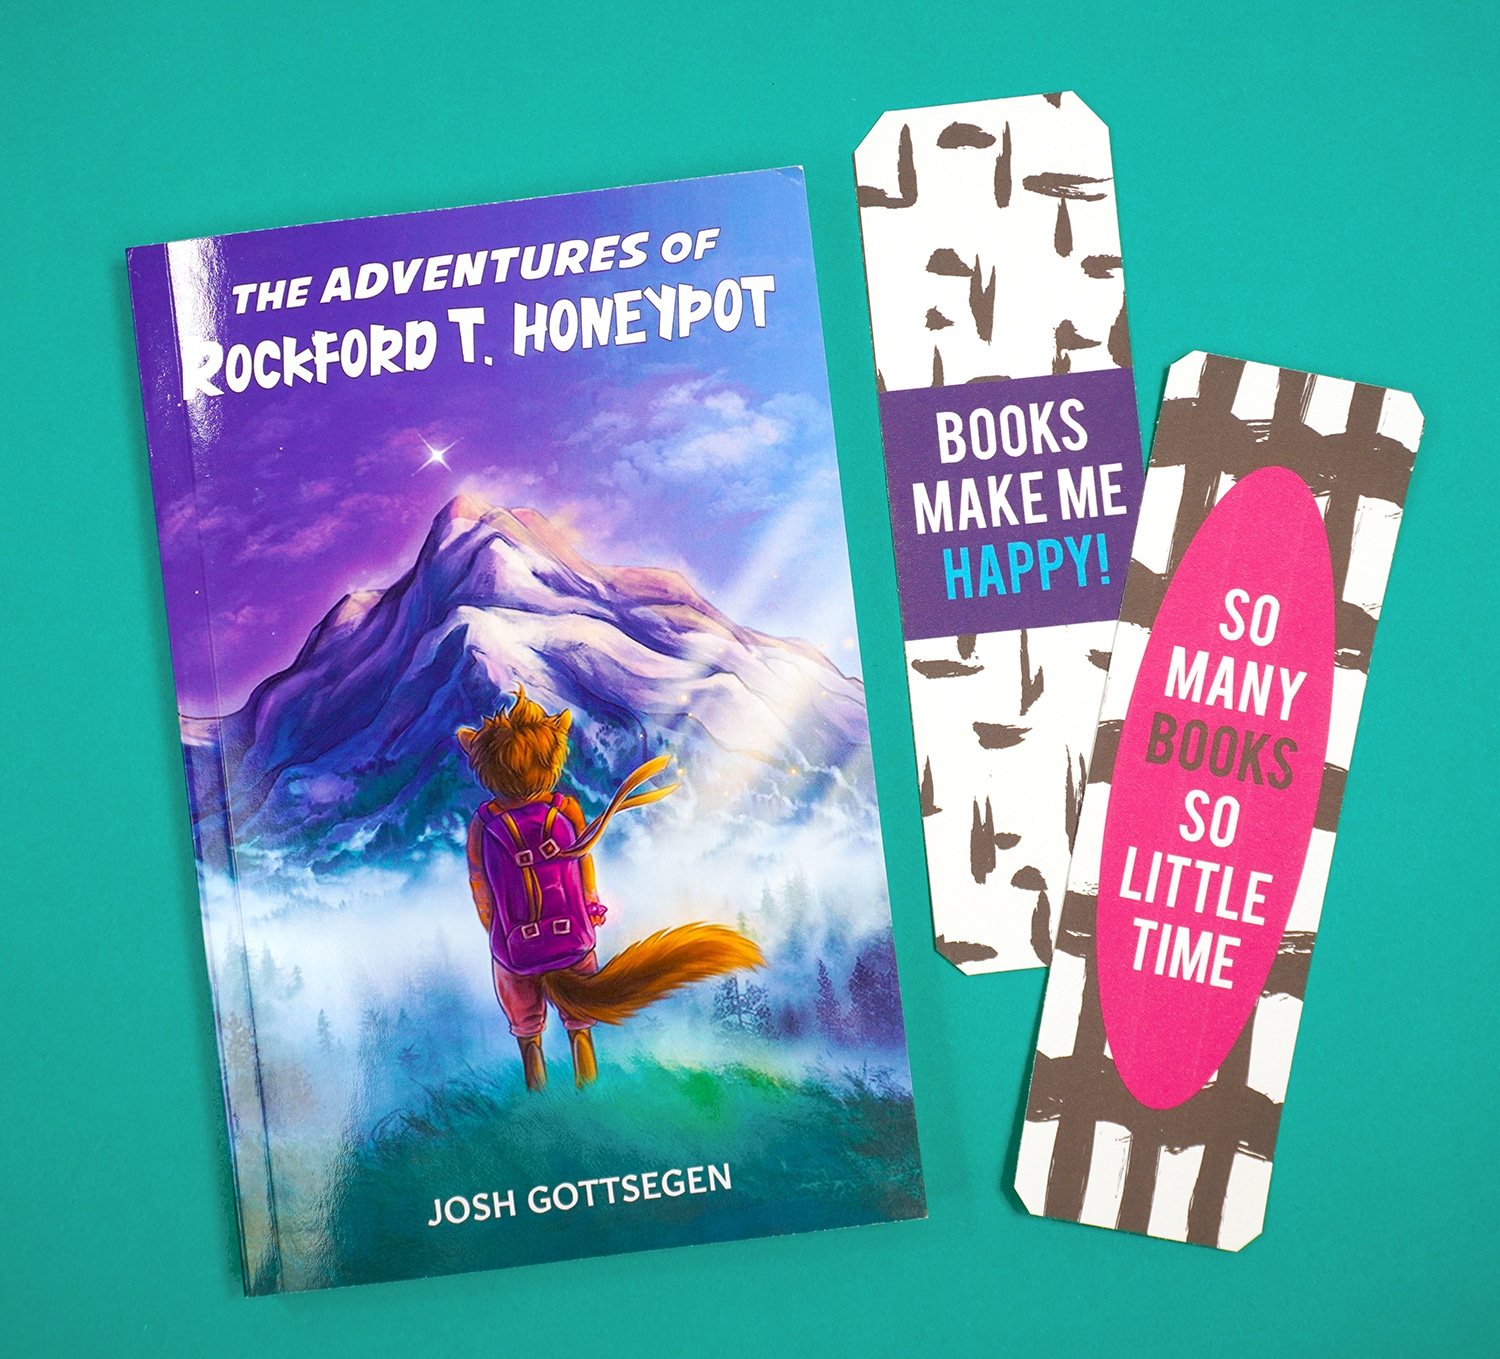 ""\""""The Adventures of Rockford T. Honeypot"""" book and printable bookmarks on teal background""1500|1359|?|en|2|453f33d384fc7f6e250c7c354b5052c9|False|UNLIKELY|0.34204283356666565